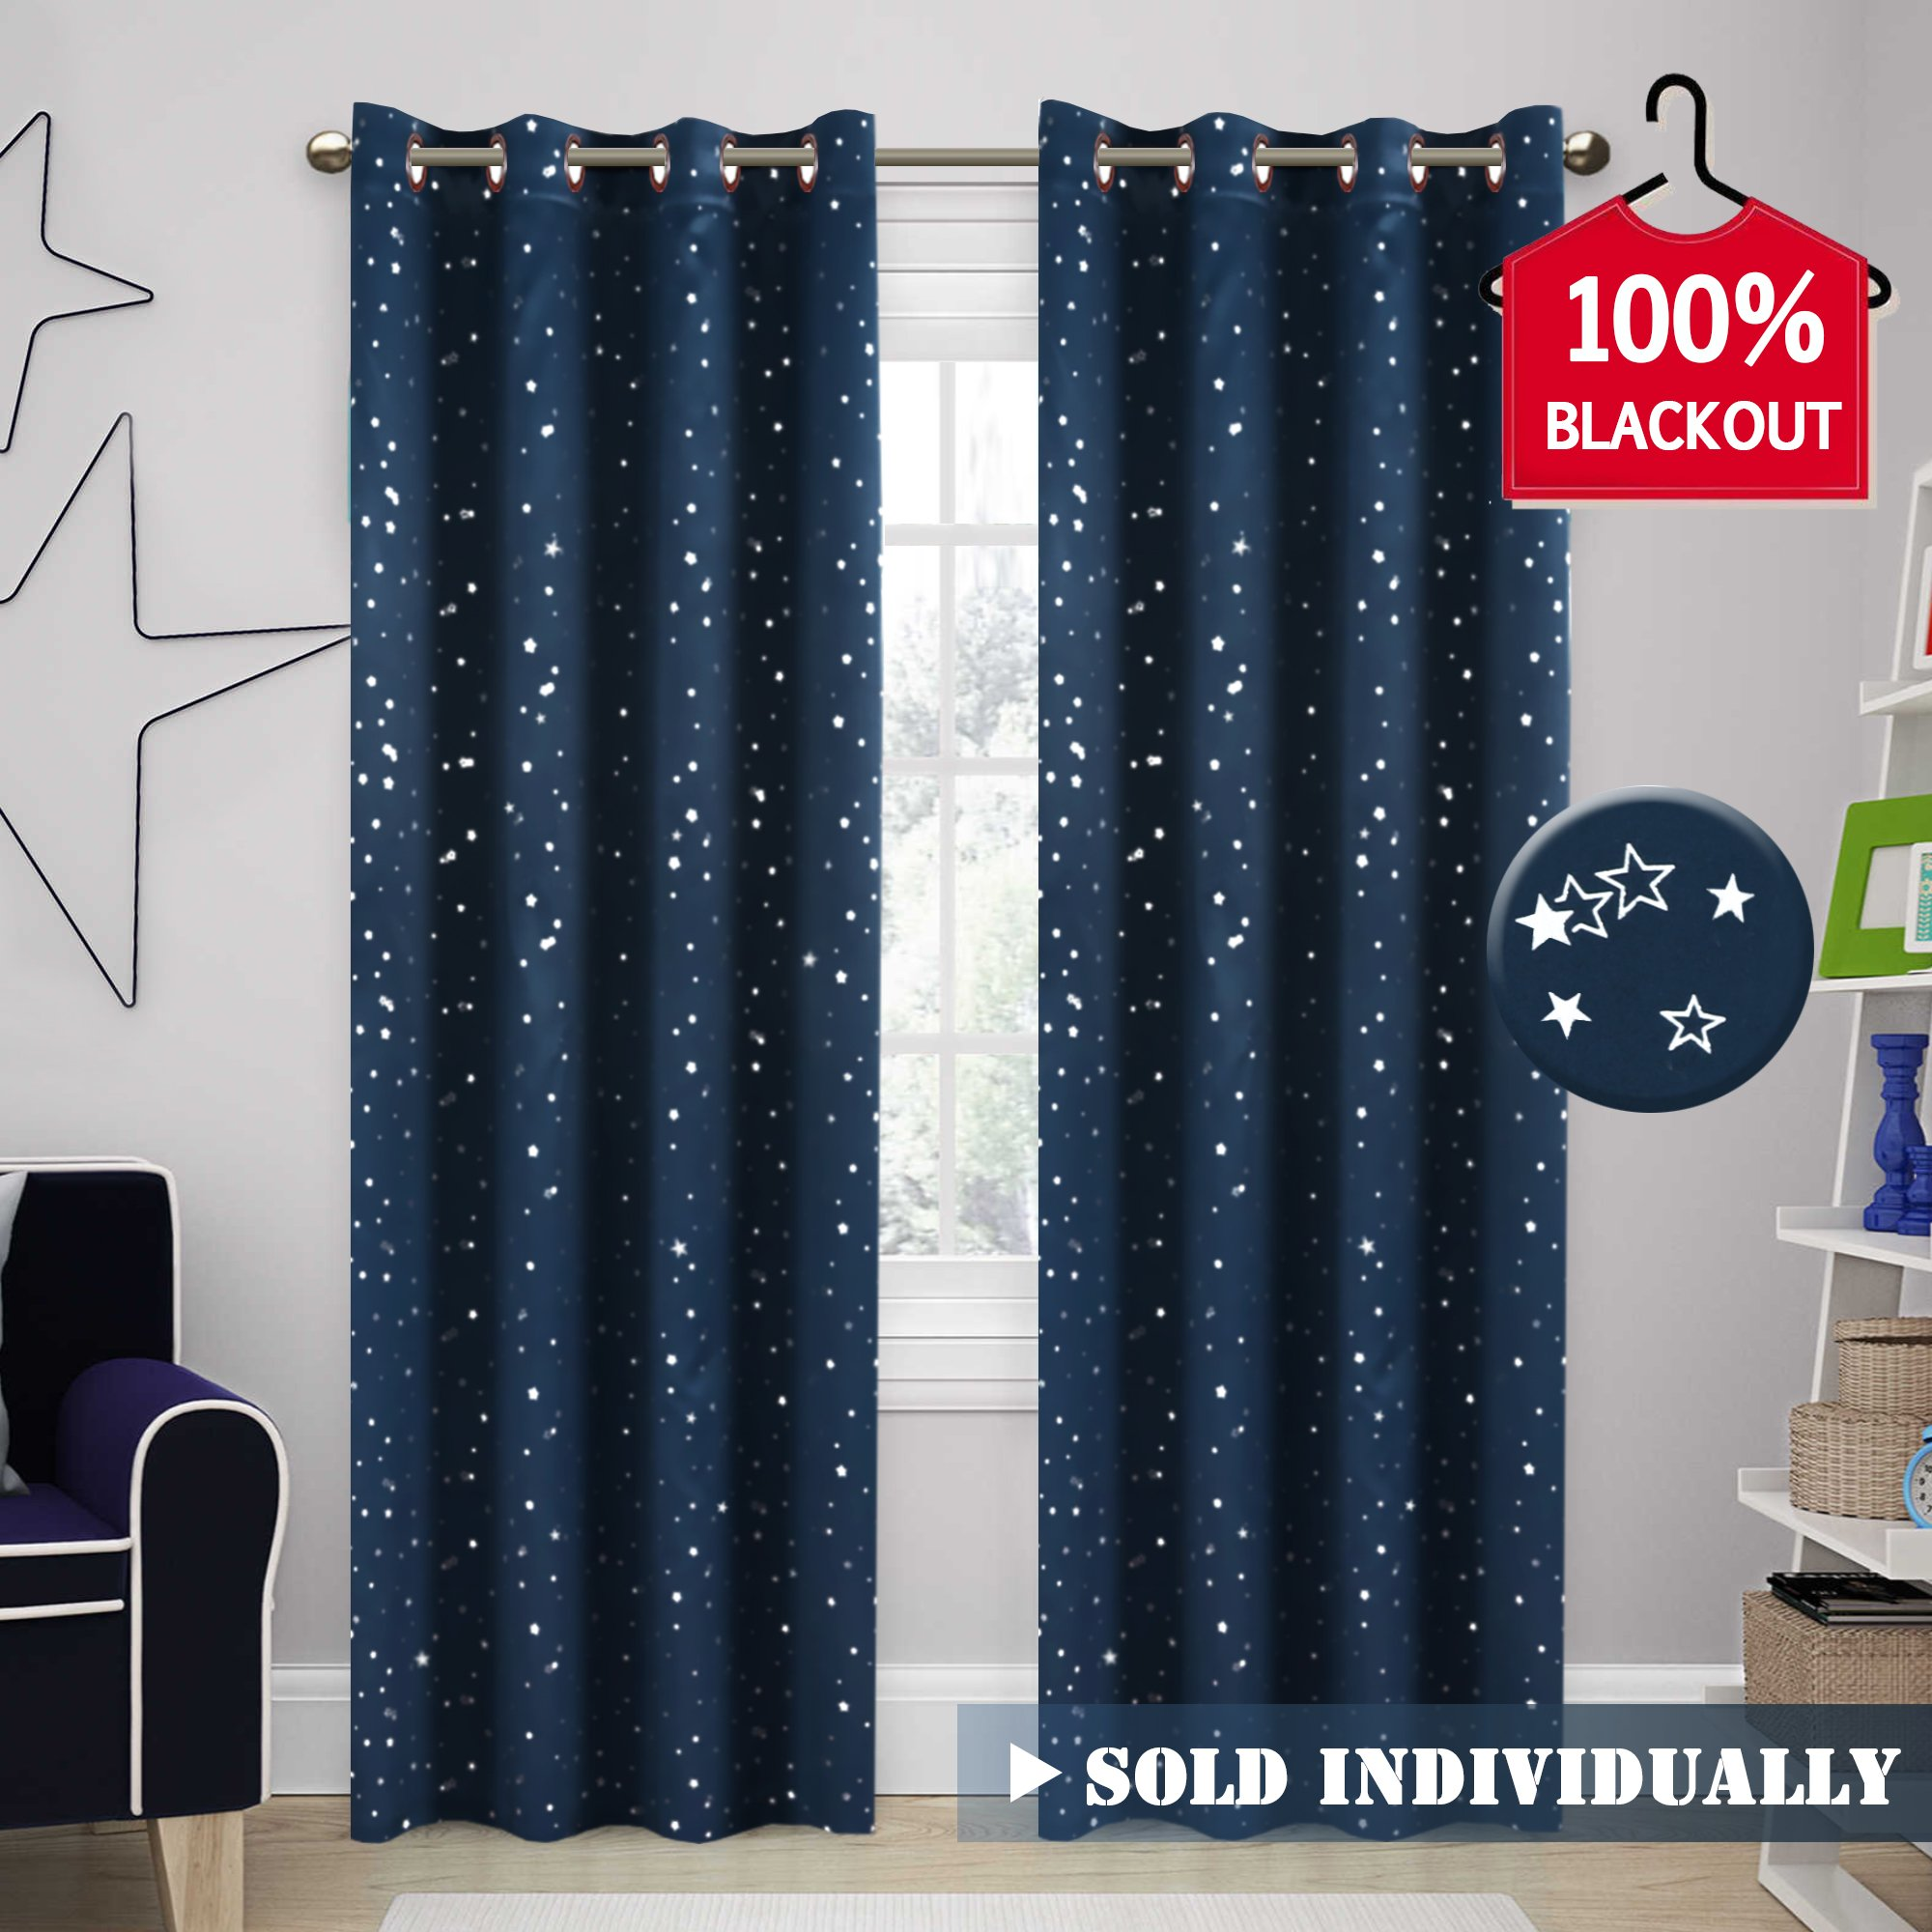 H.VERSAILTEX 100% Blackout Star Curtains for Boys Room Thermal Insulated Kids Room Curtain Primitive Star Curtains (Sold by 1 Panel), 52 inch Width by 84 inch Length